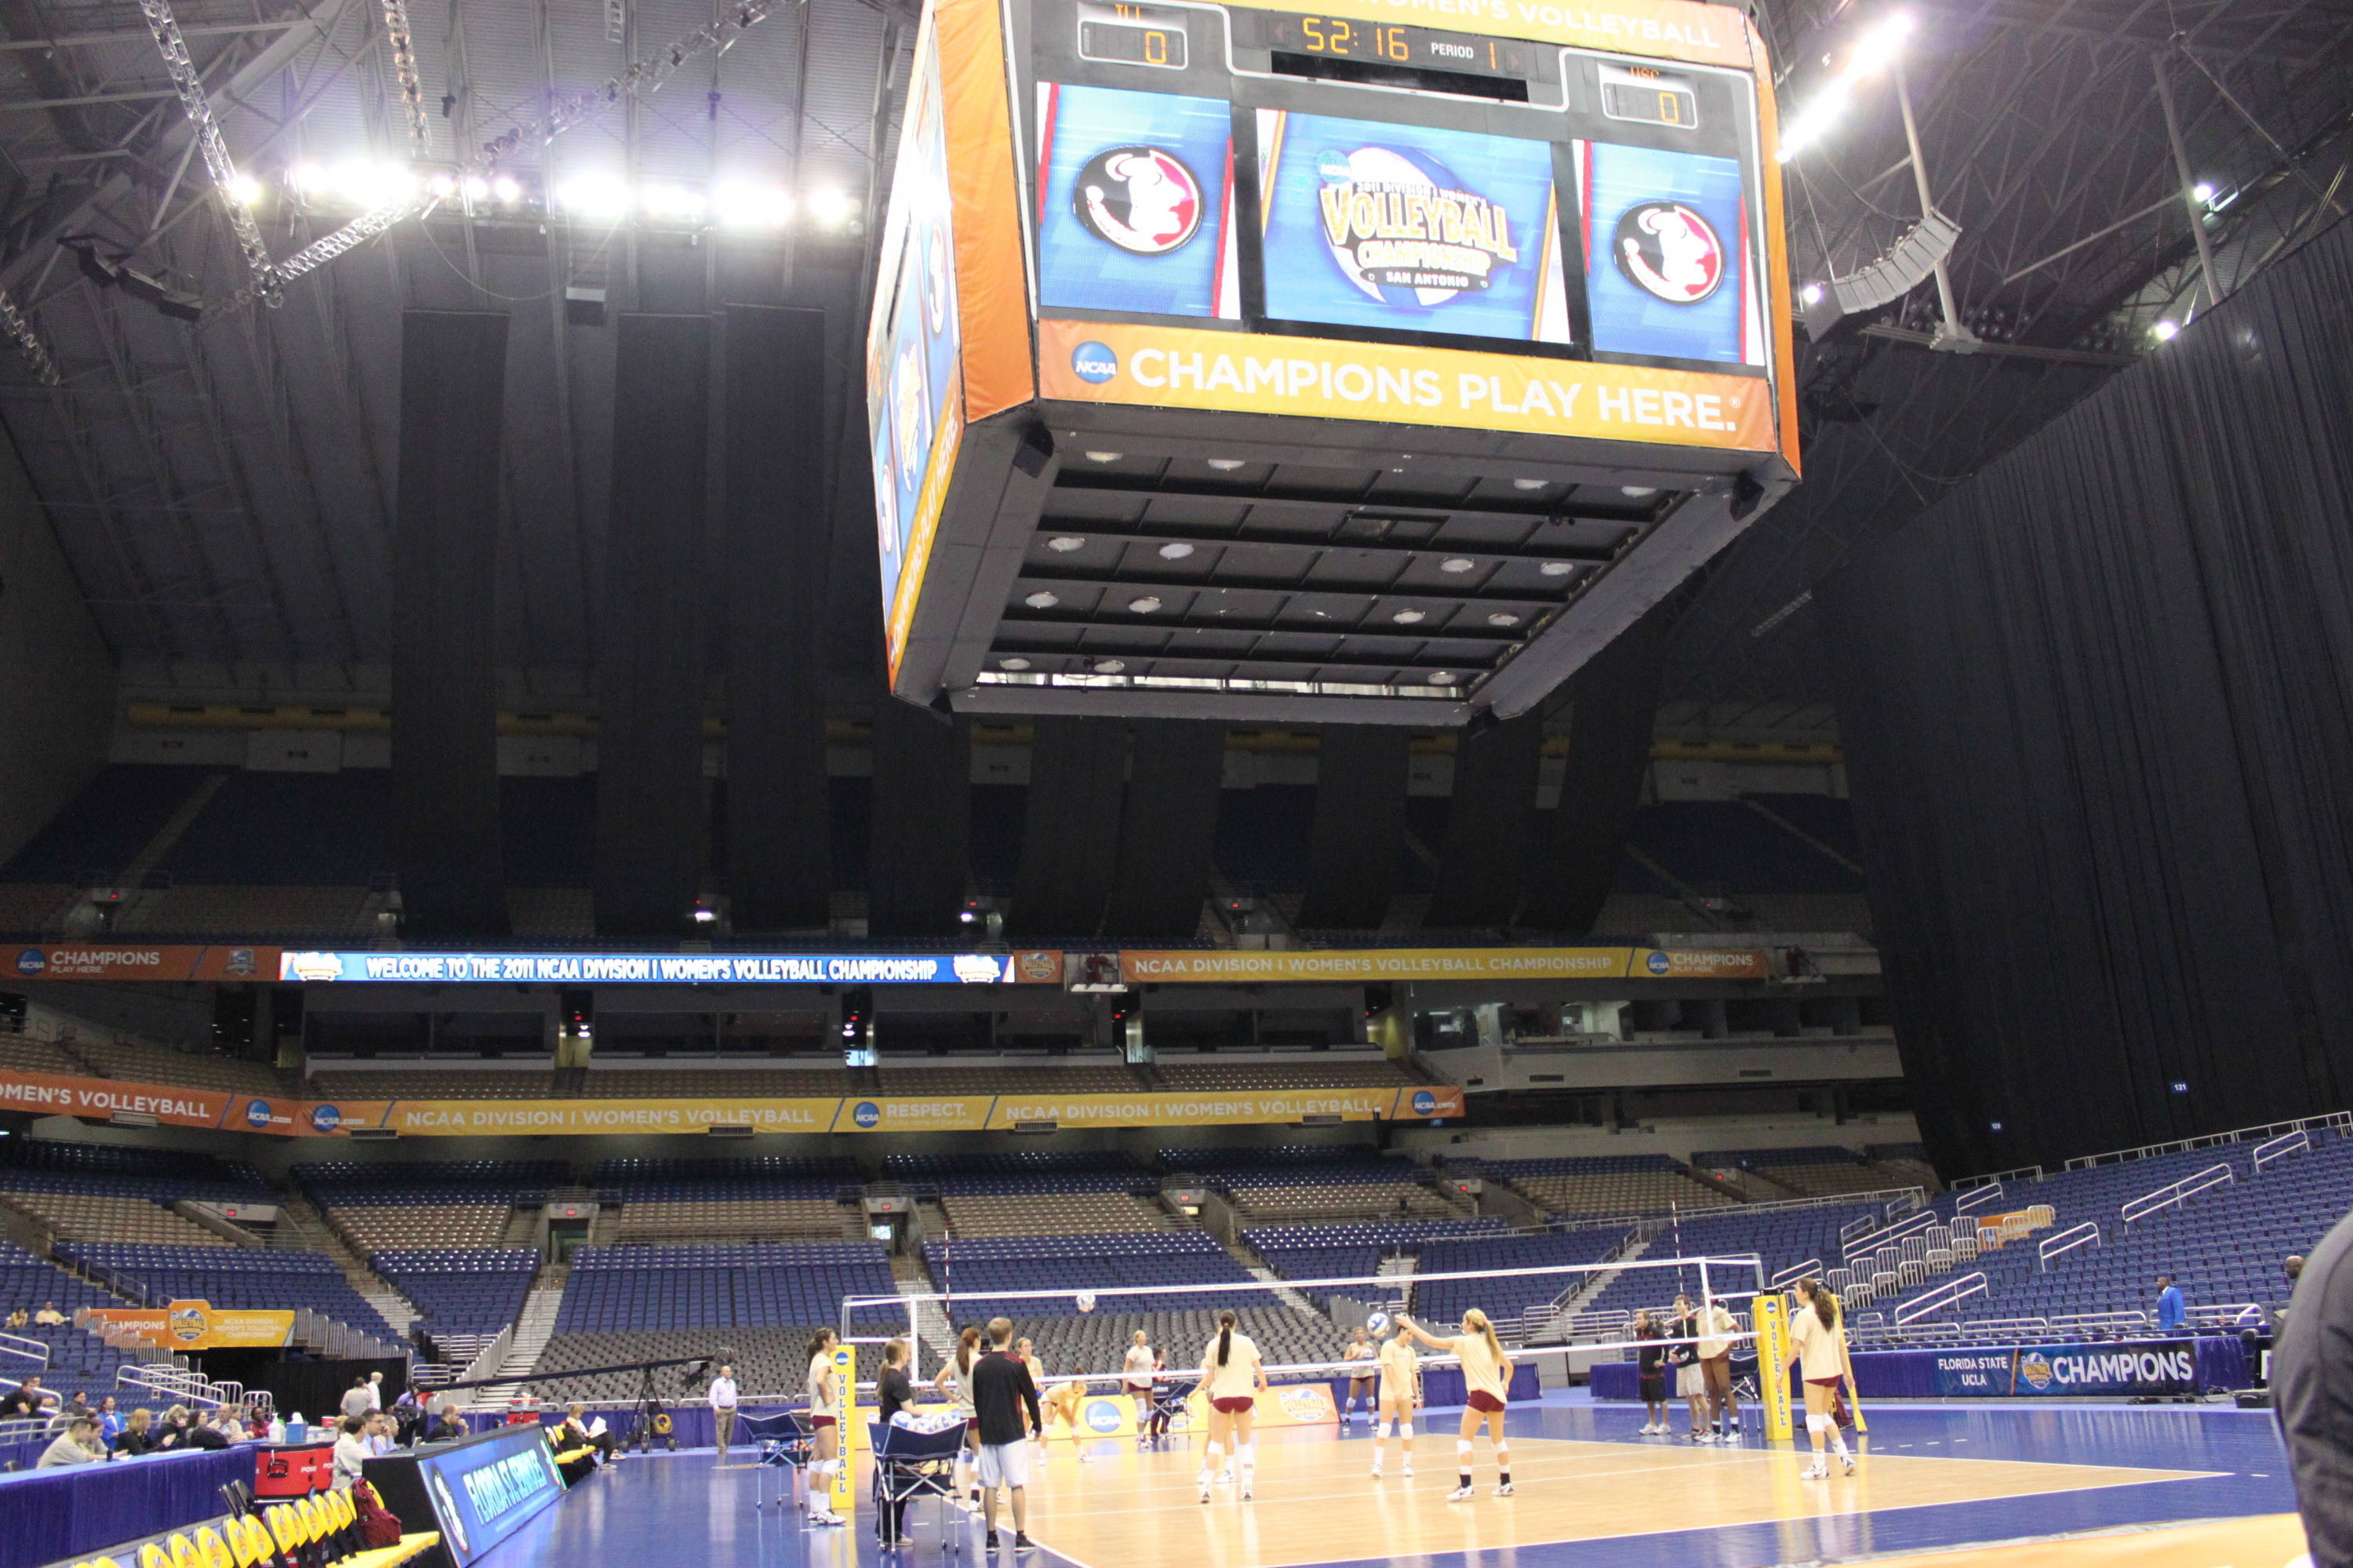 wide view of practice